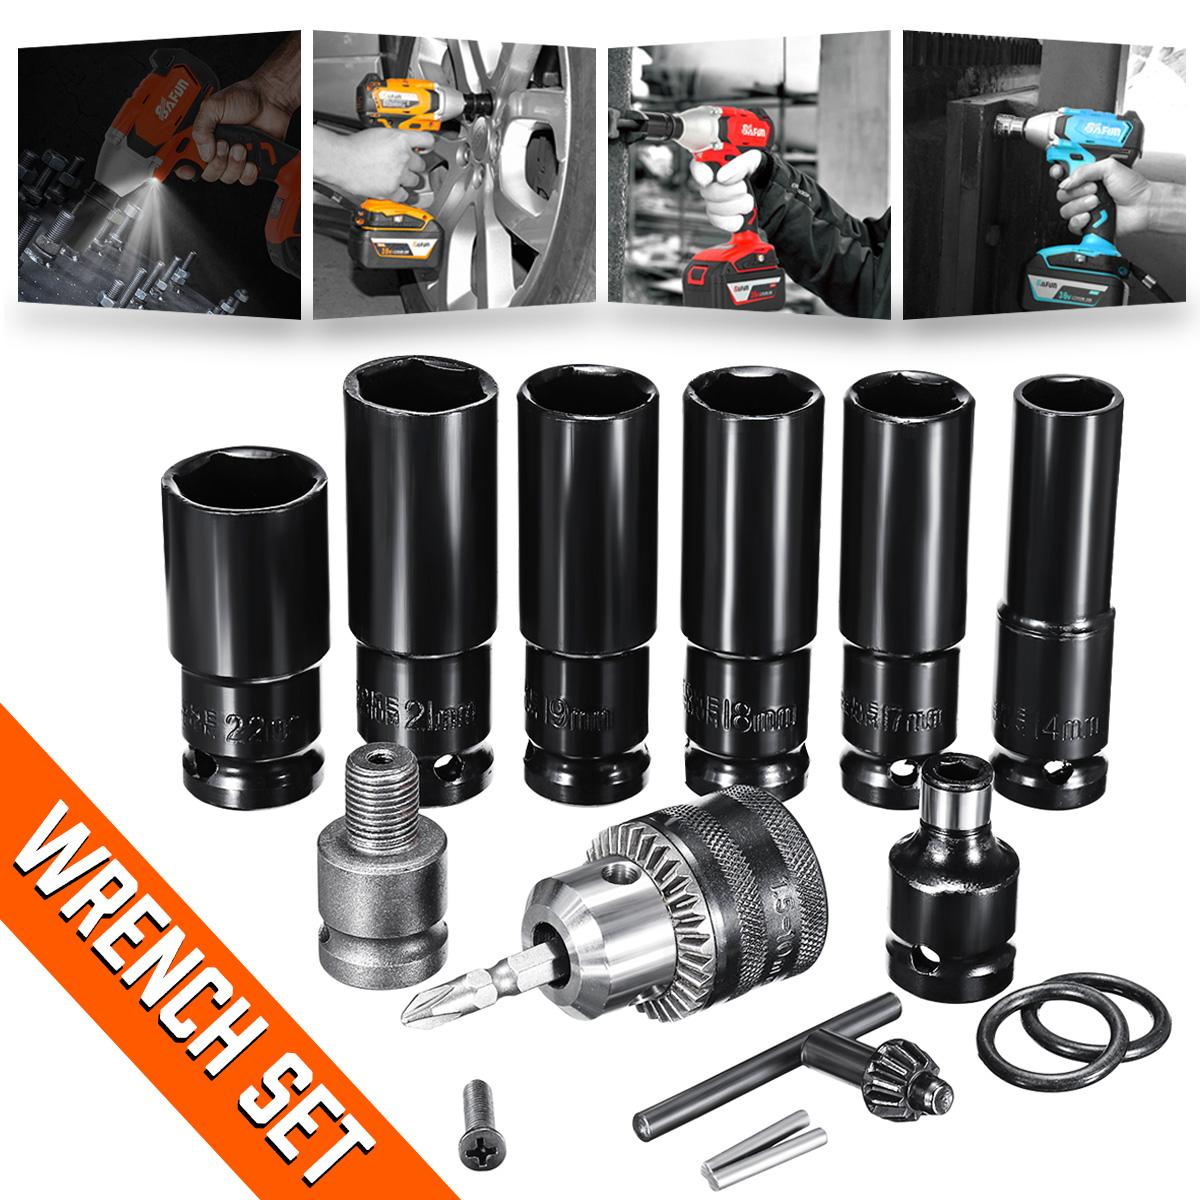 Impact Socket Set Universal Accessories For Electric Impact Wrench Sleeves Batch Head Drill Chuck For Wrench Adapter Hand Tool